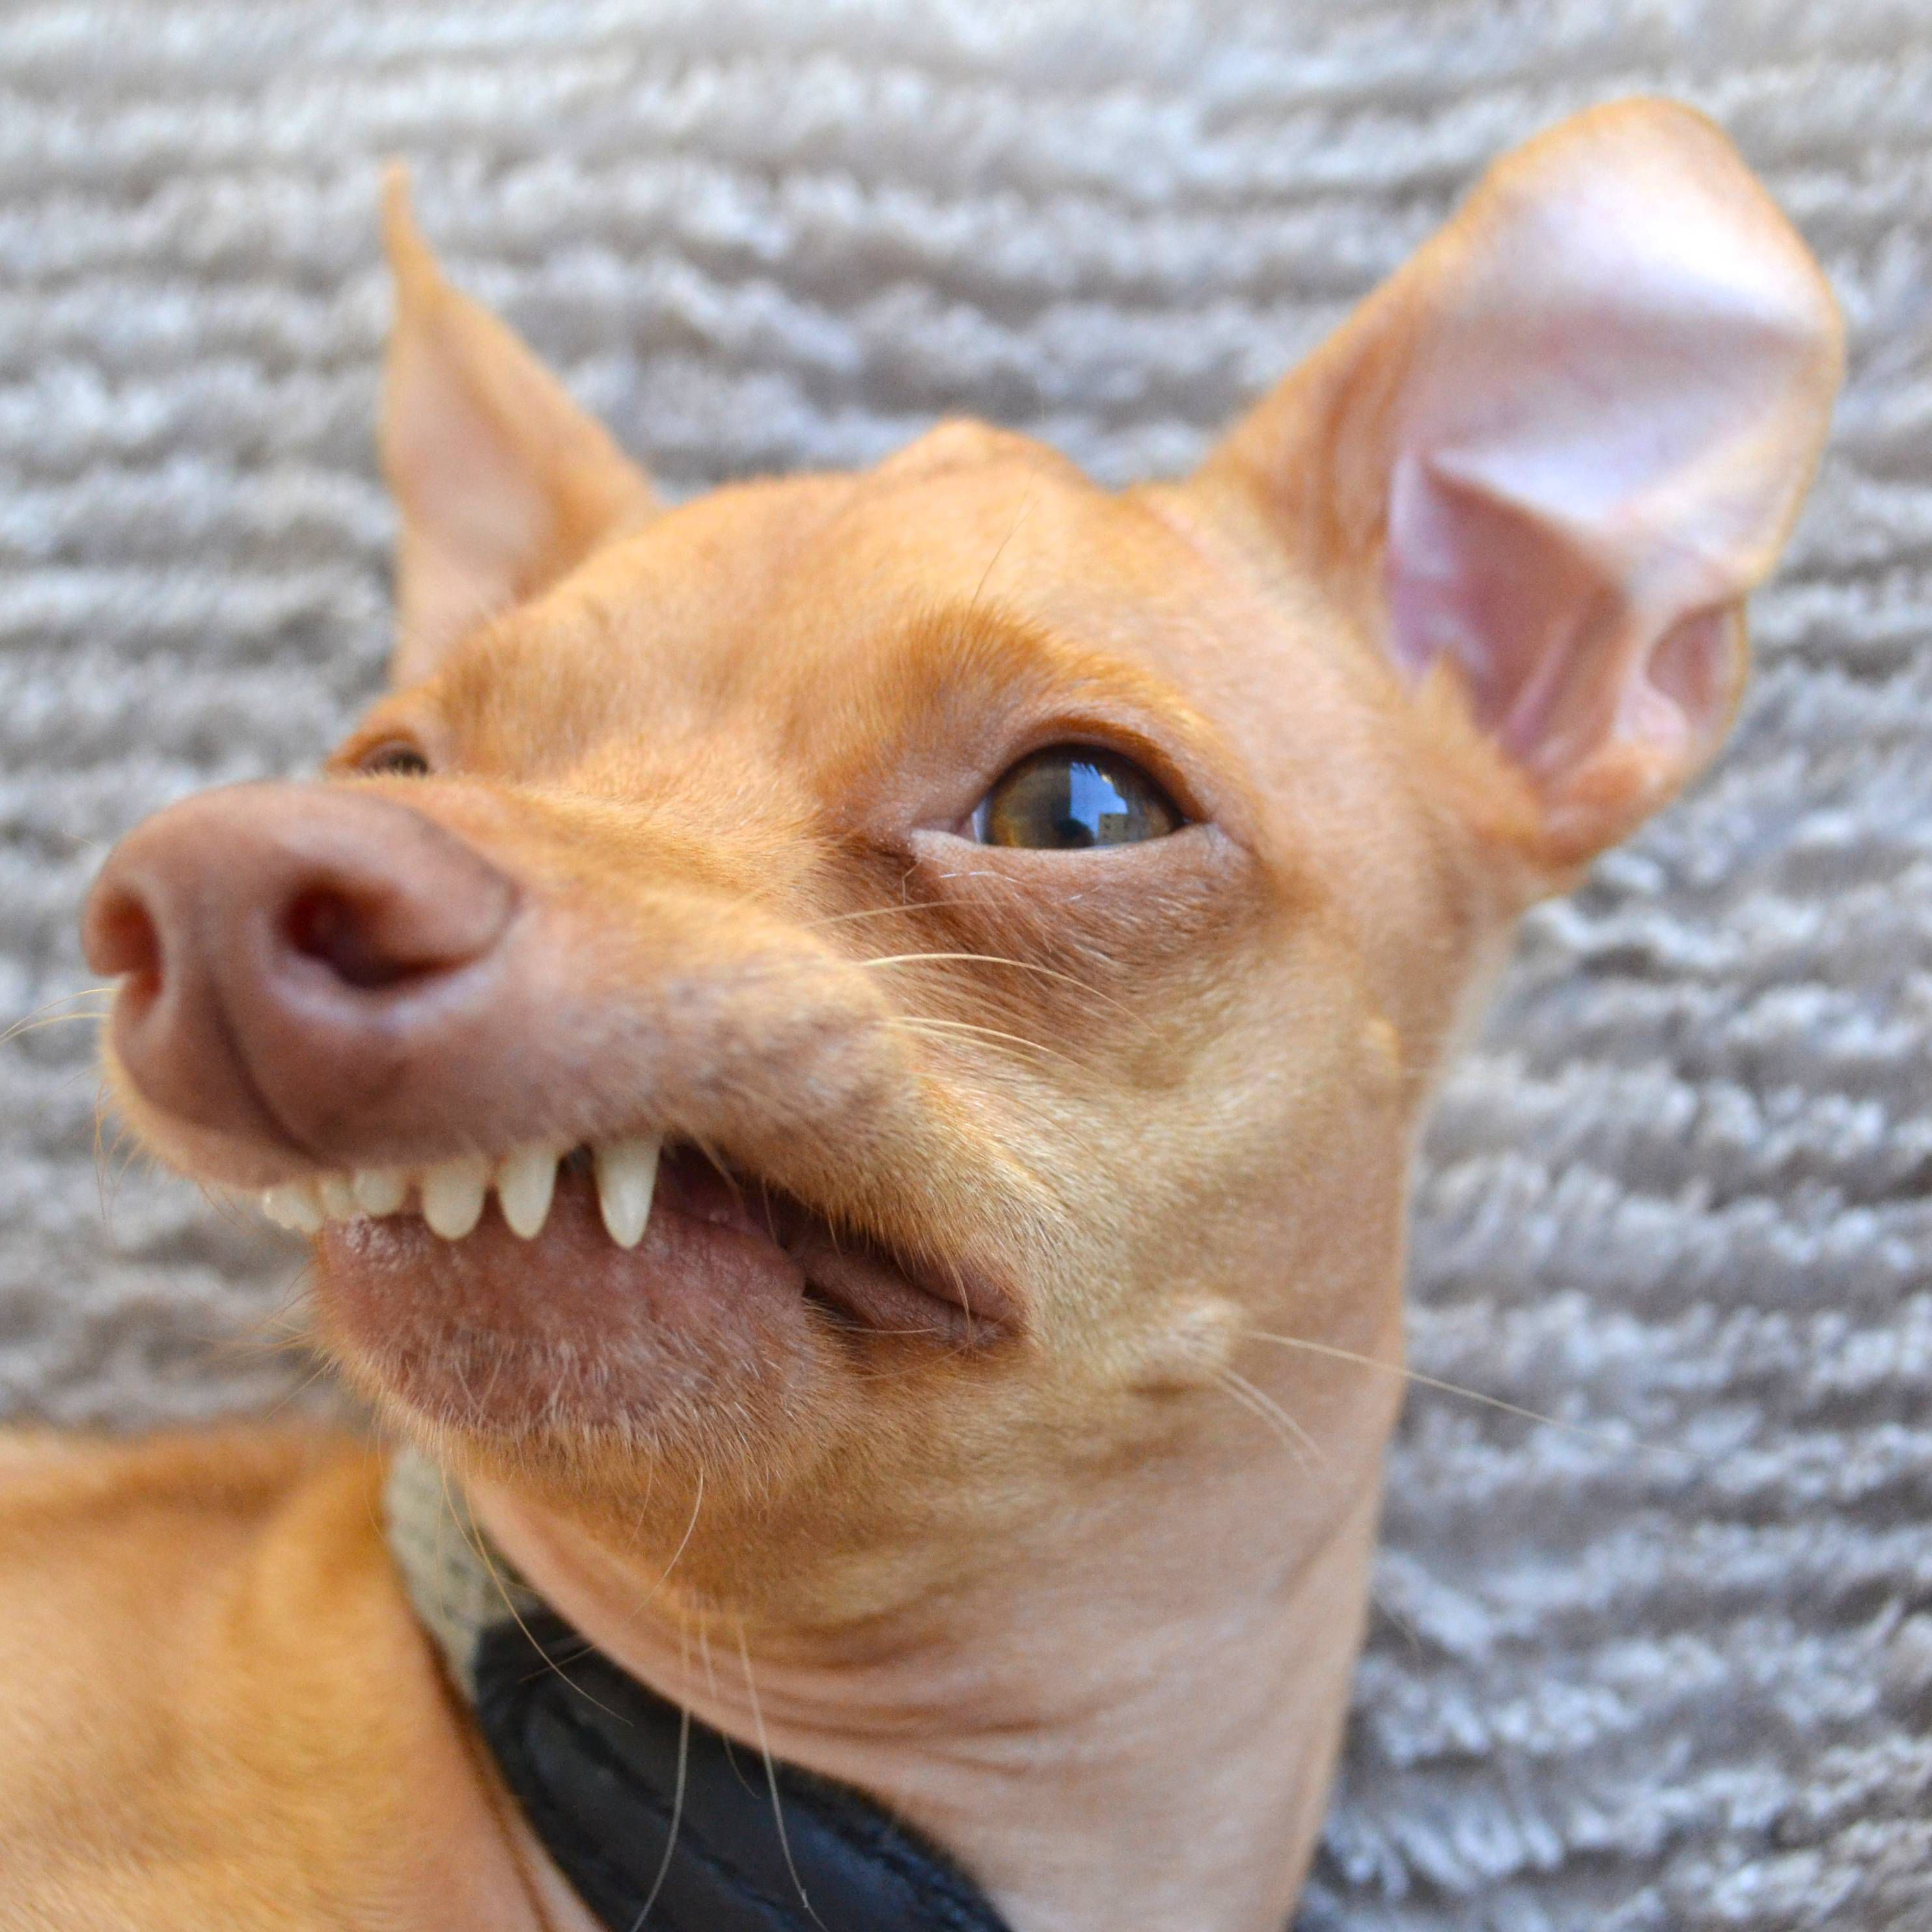 Tuna, the Chiweenie With an Overbite